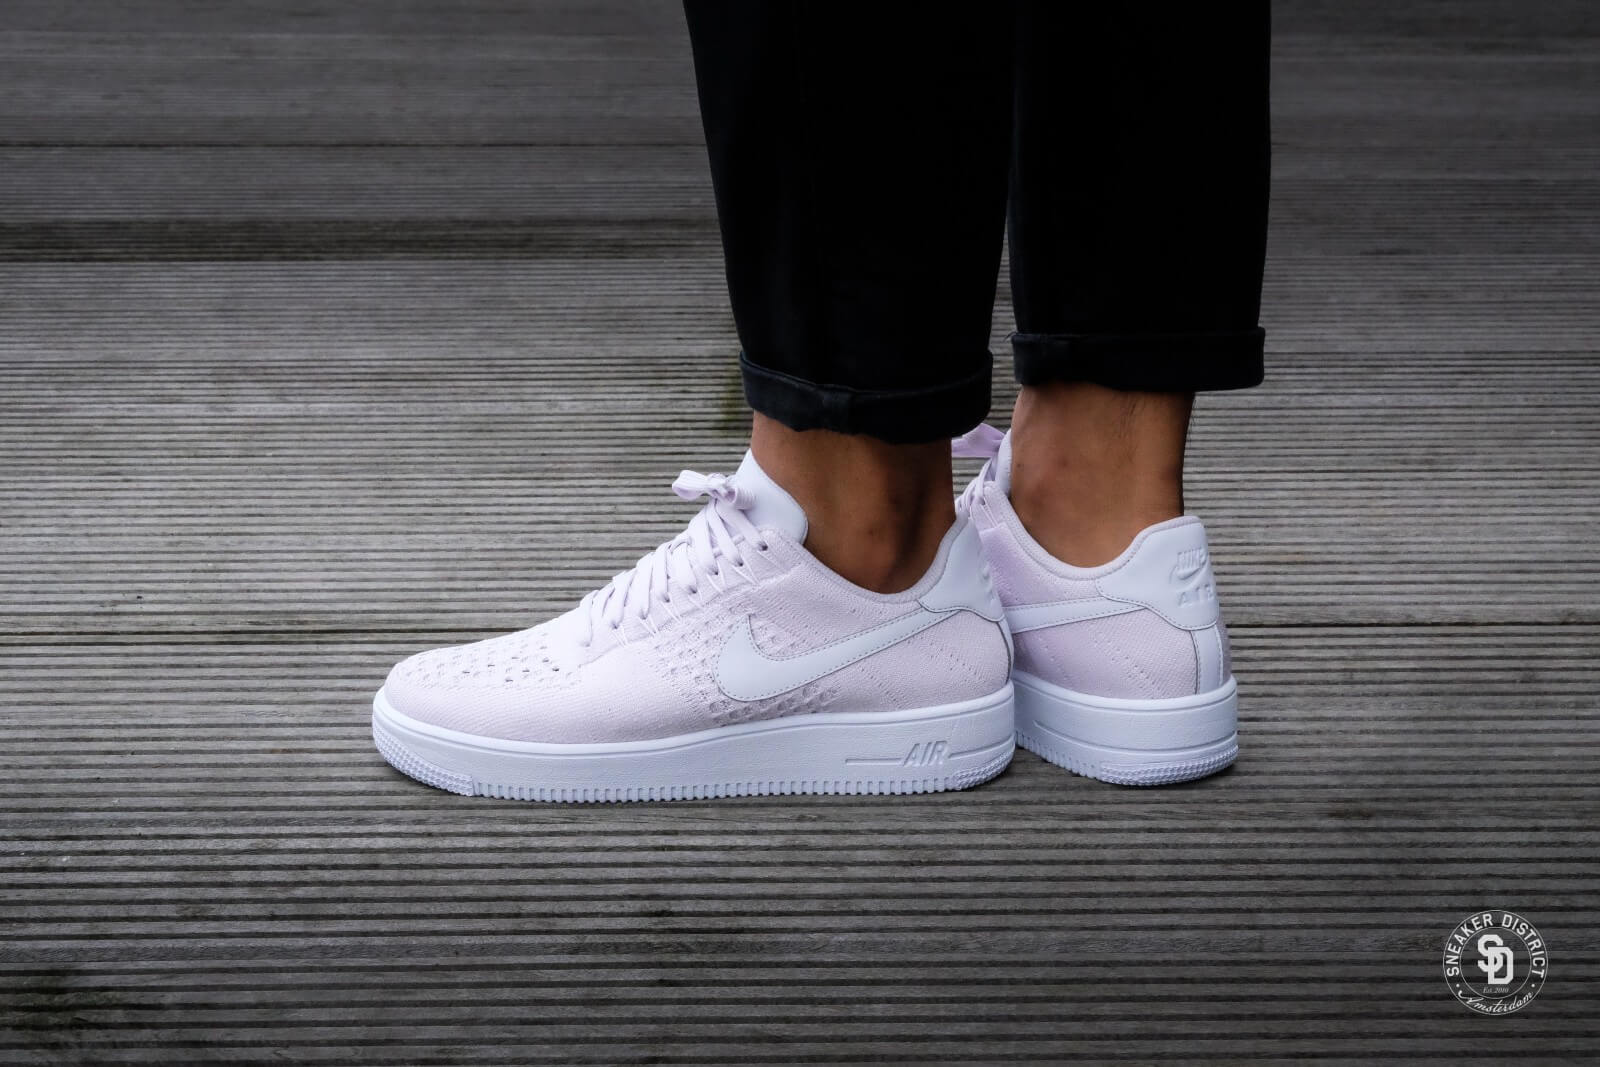 b6b6c3fa98c85 ... Nike Air Force 1 Ultra Flyknit Low Light Violet White - 817 ...